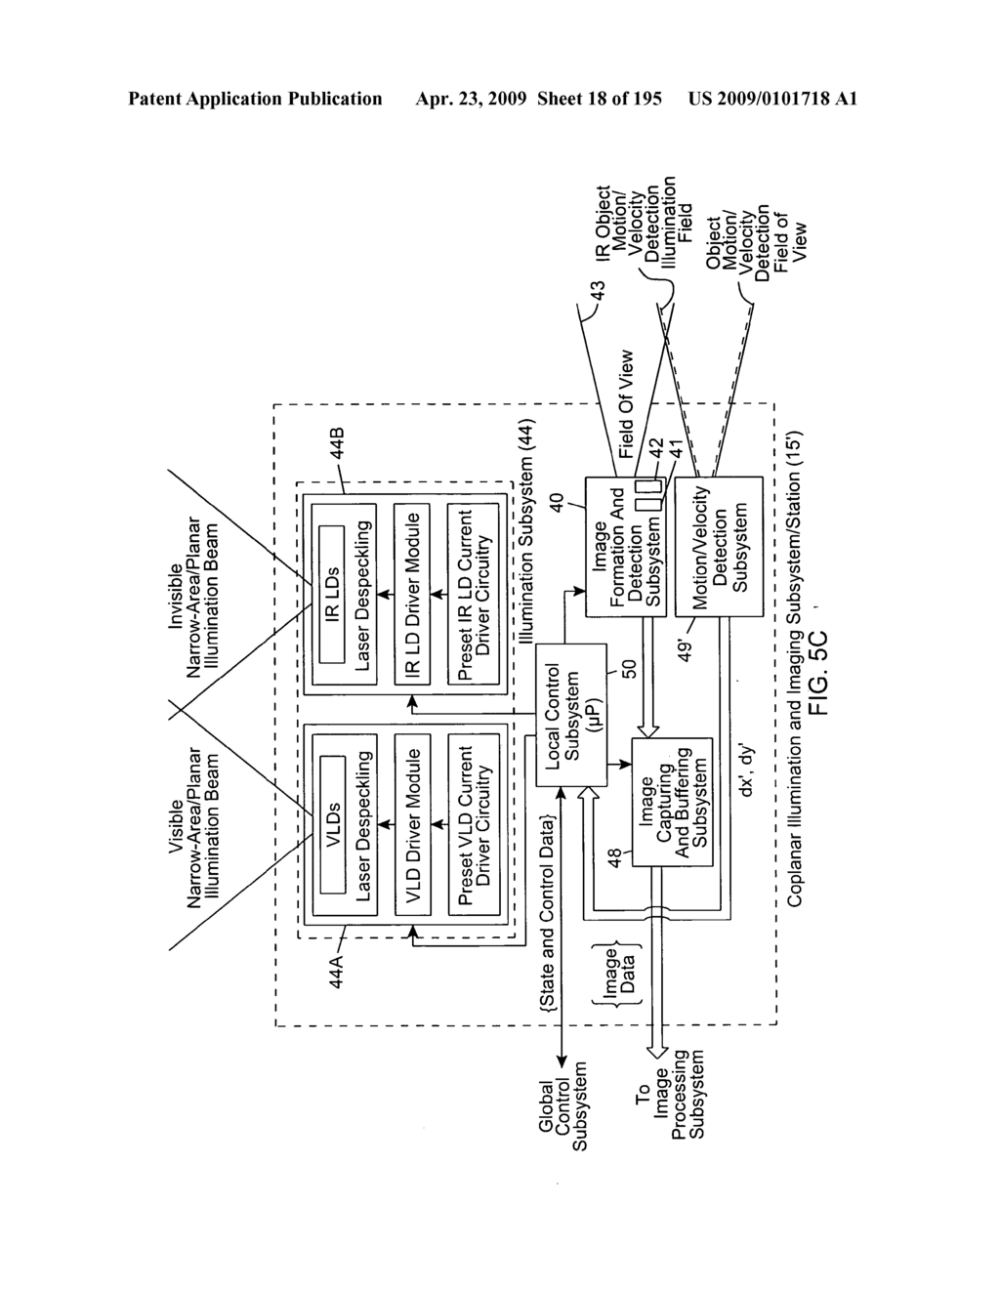 medium resolution of digital image capturing and processing system employing automatic object detection and spectral mixing based illumination techniques diagram schematic